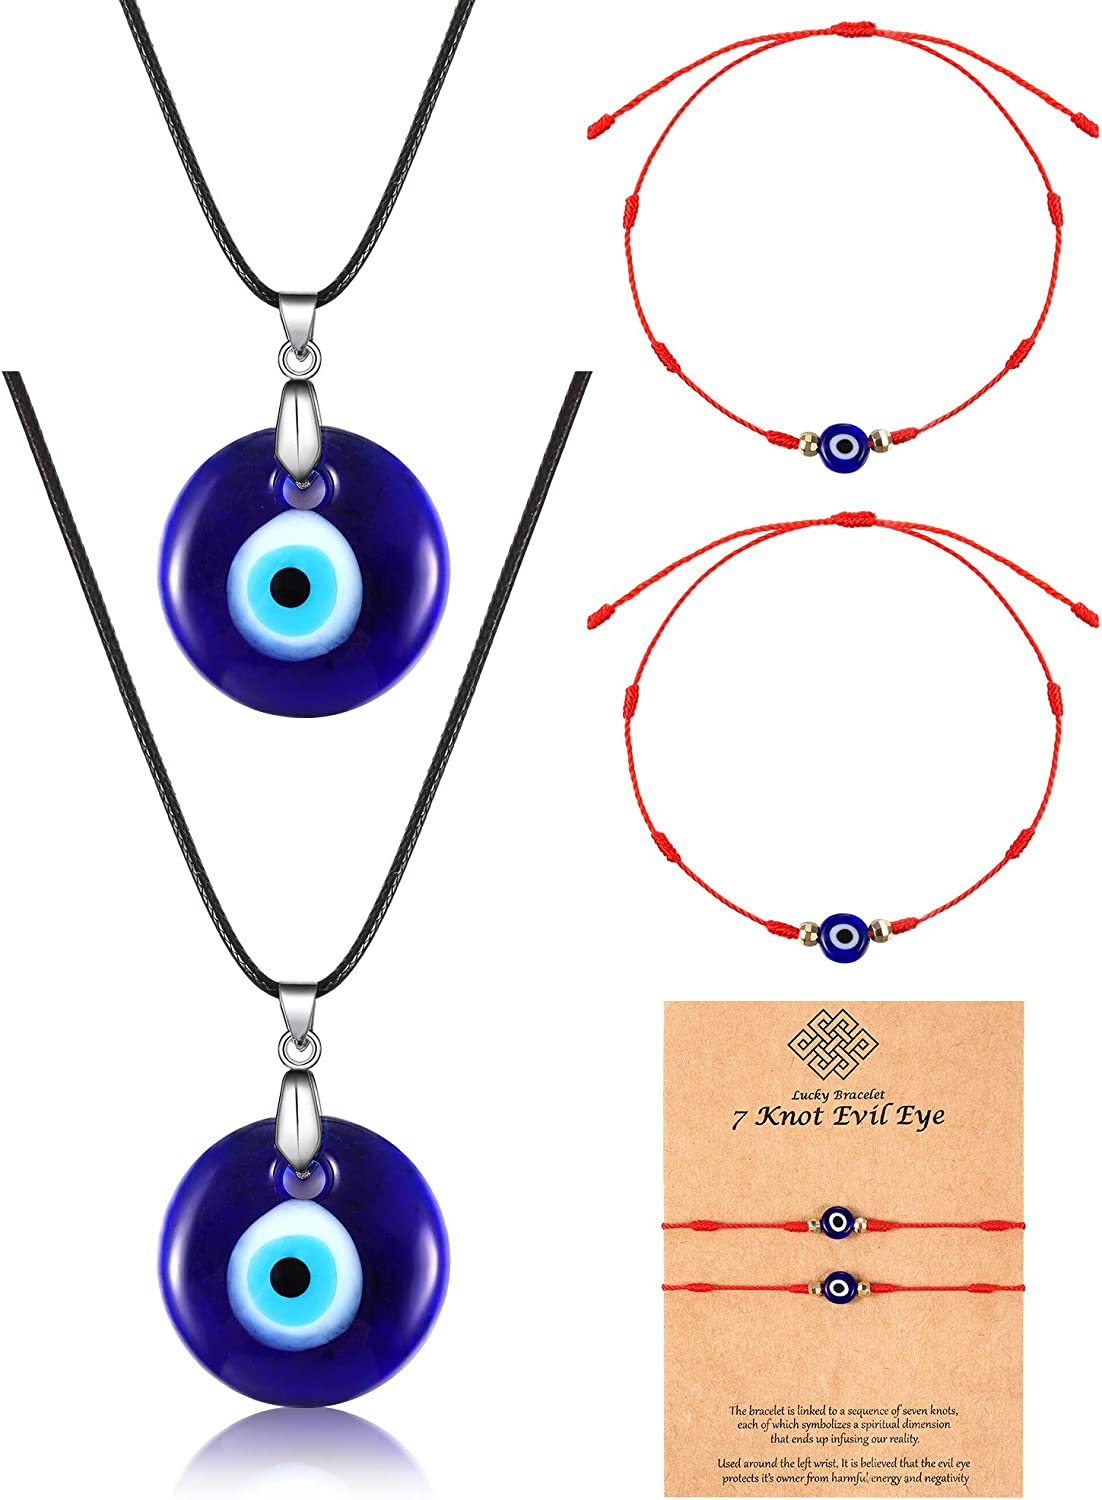 Evil Eye Glass Pendant Necklace Protective Charm Lucky Charm Daily Wear Jewelry Good Luck Amulet Pendant Turkish Eye Greek Eye Necklace